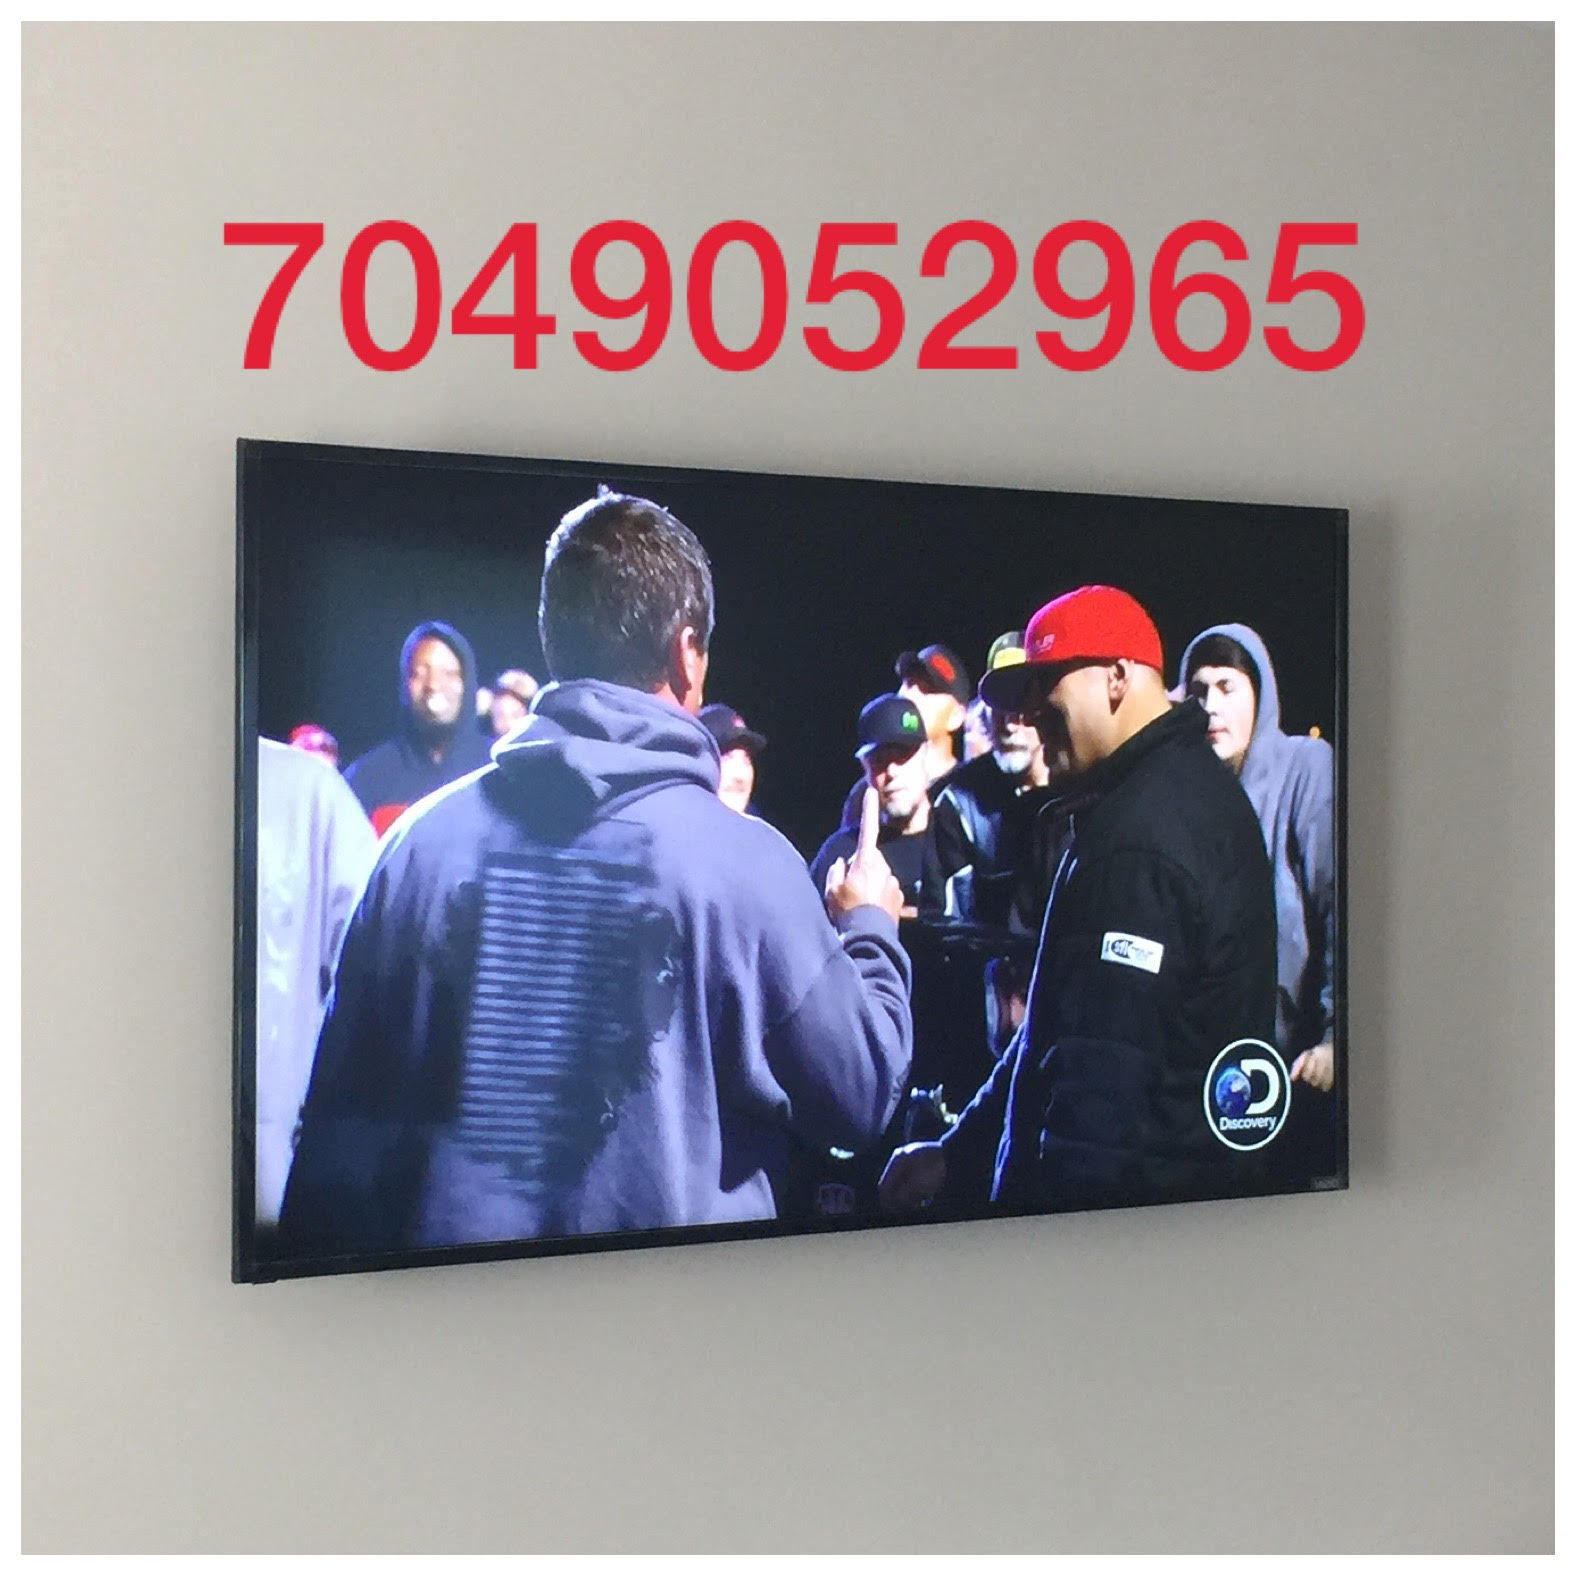 TV Mounting Service Charlotte Photo With TV Installer Phone Number